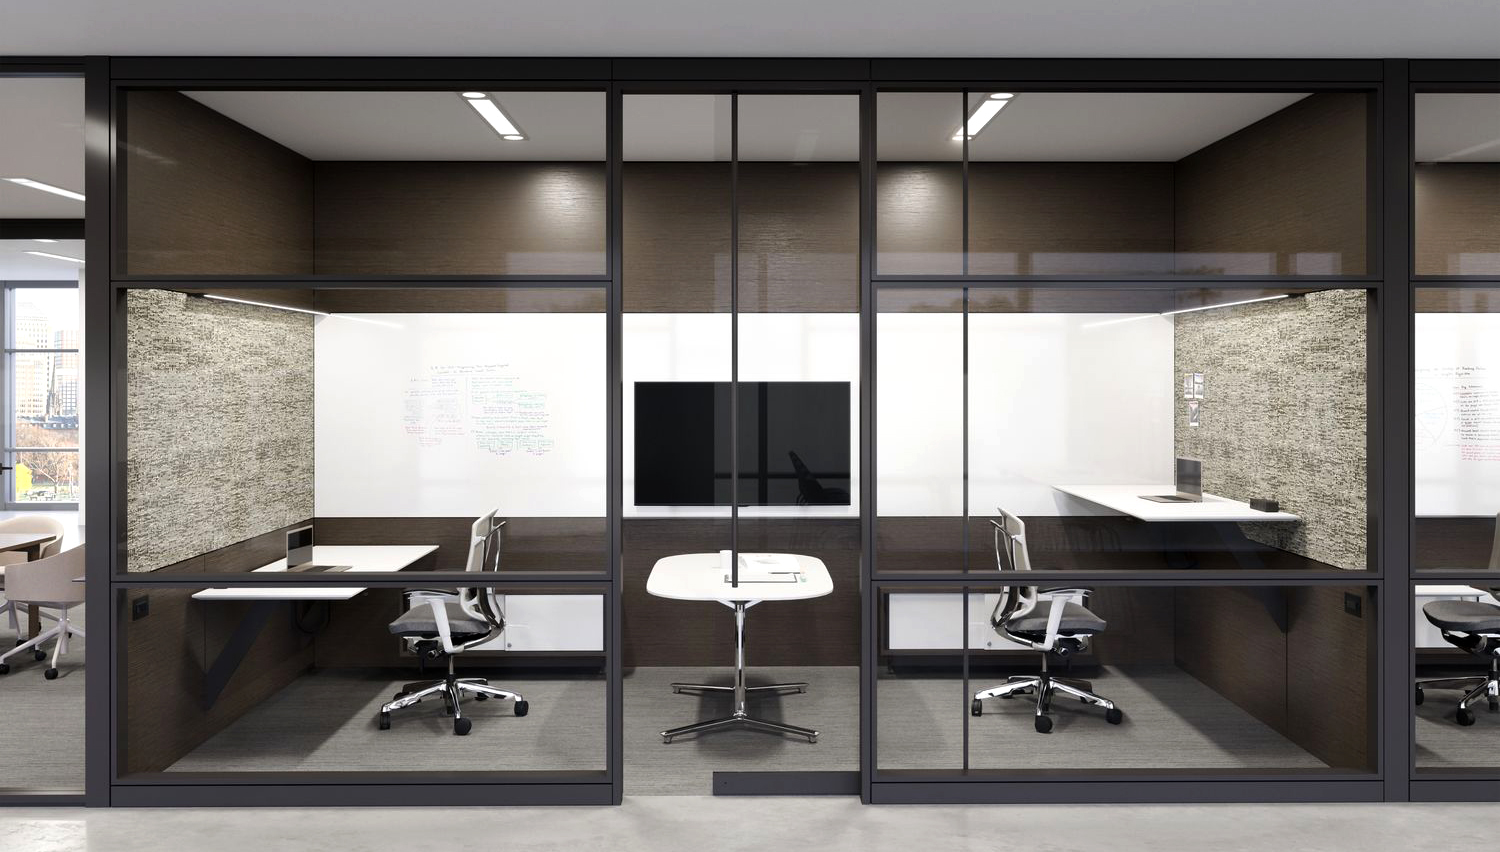 Low-Architechtural-Interiors-Private-Collaboration.jpg